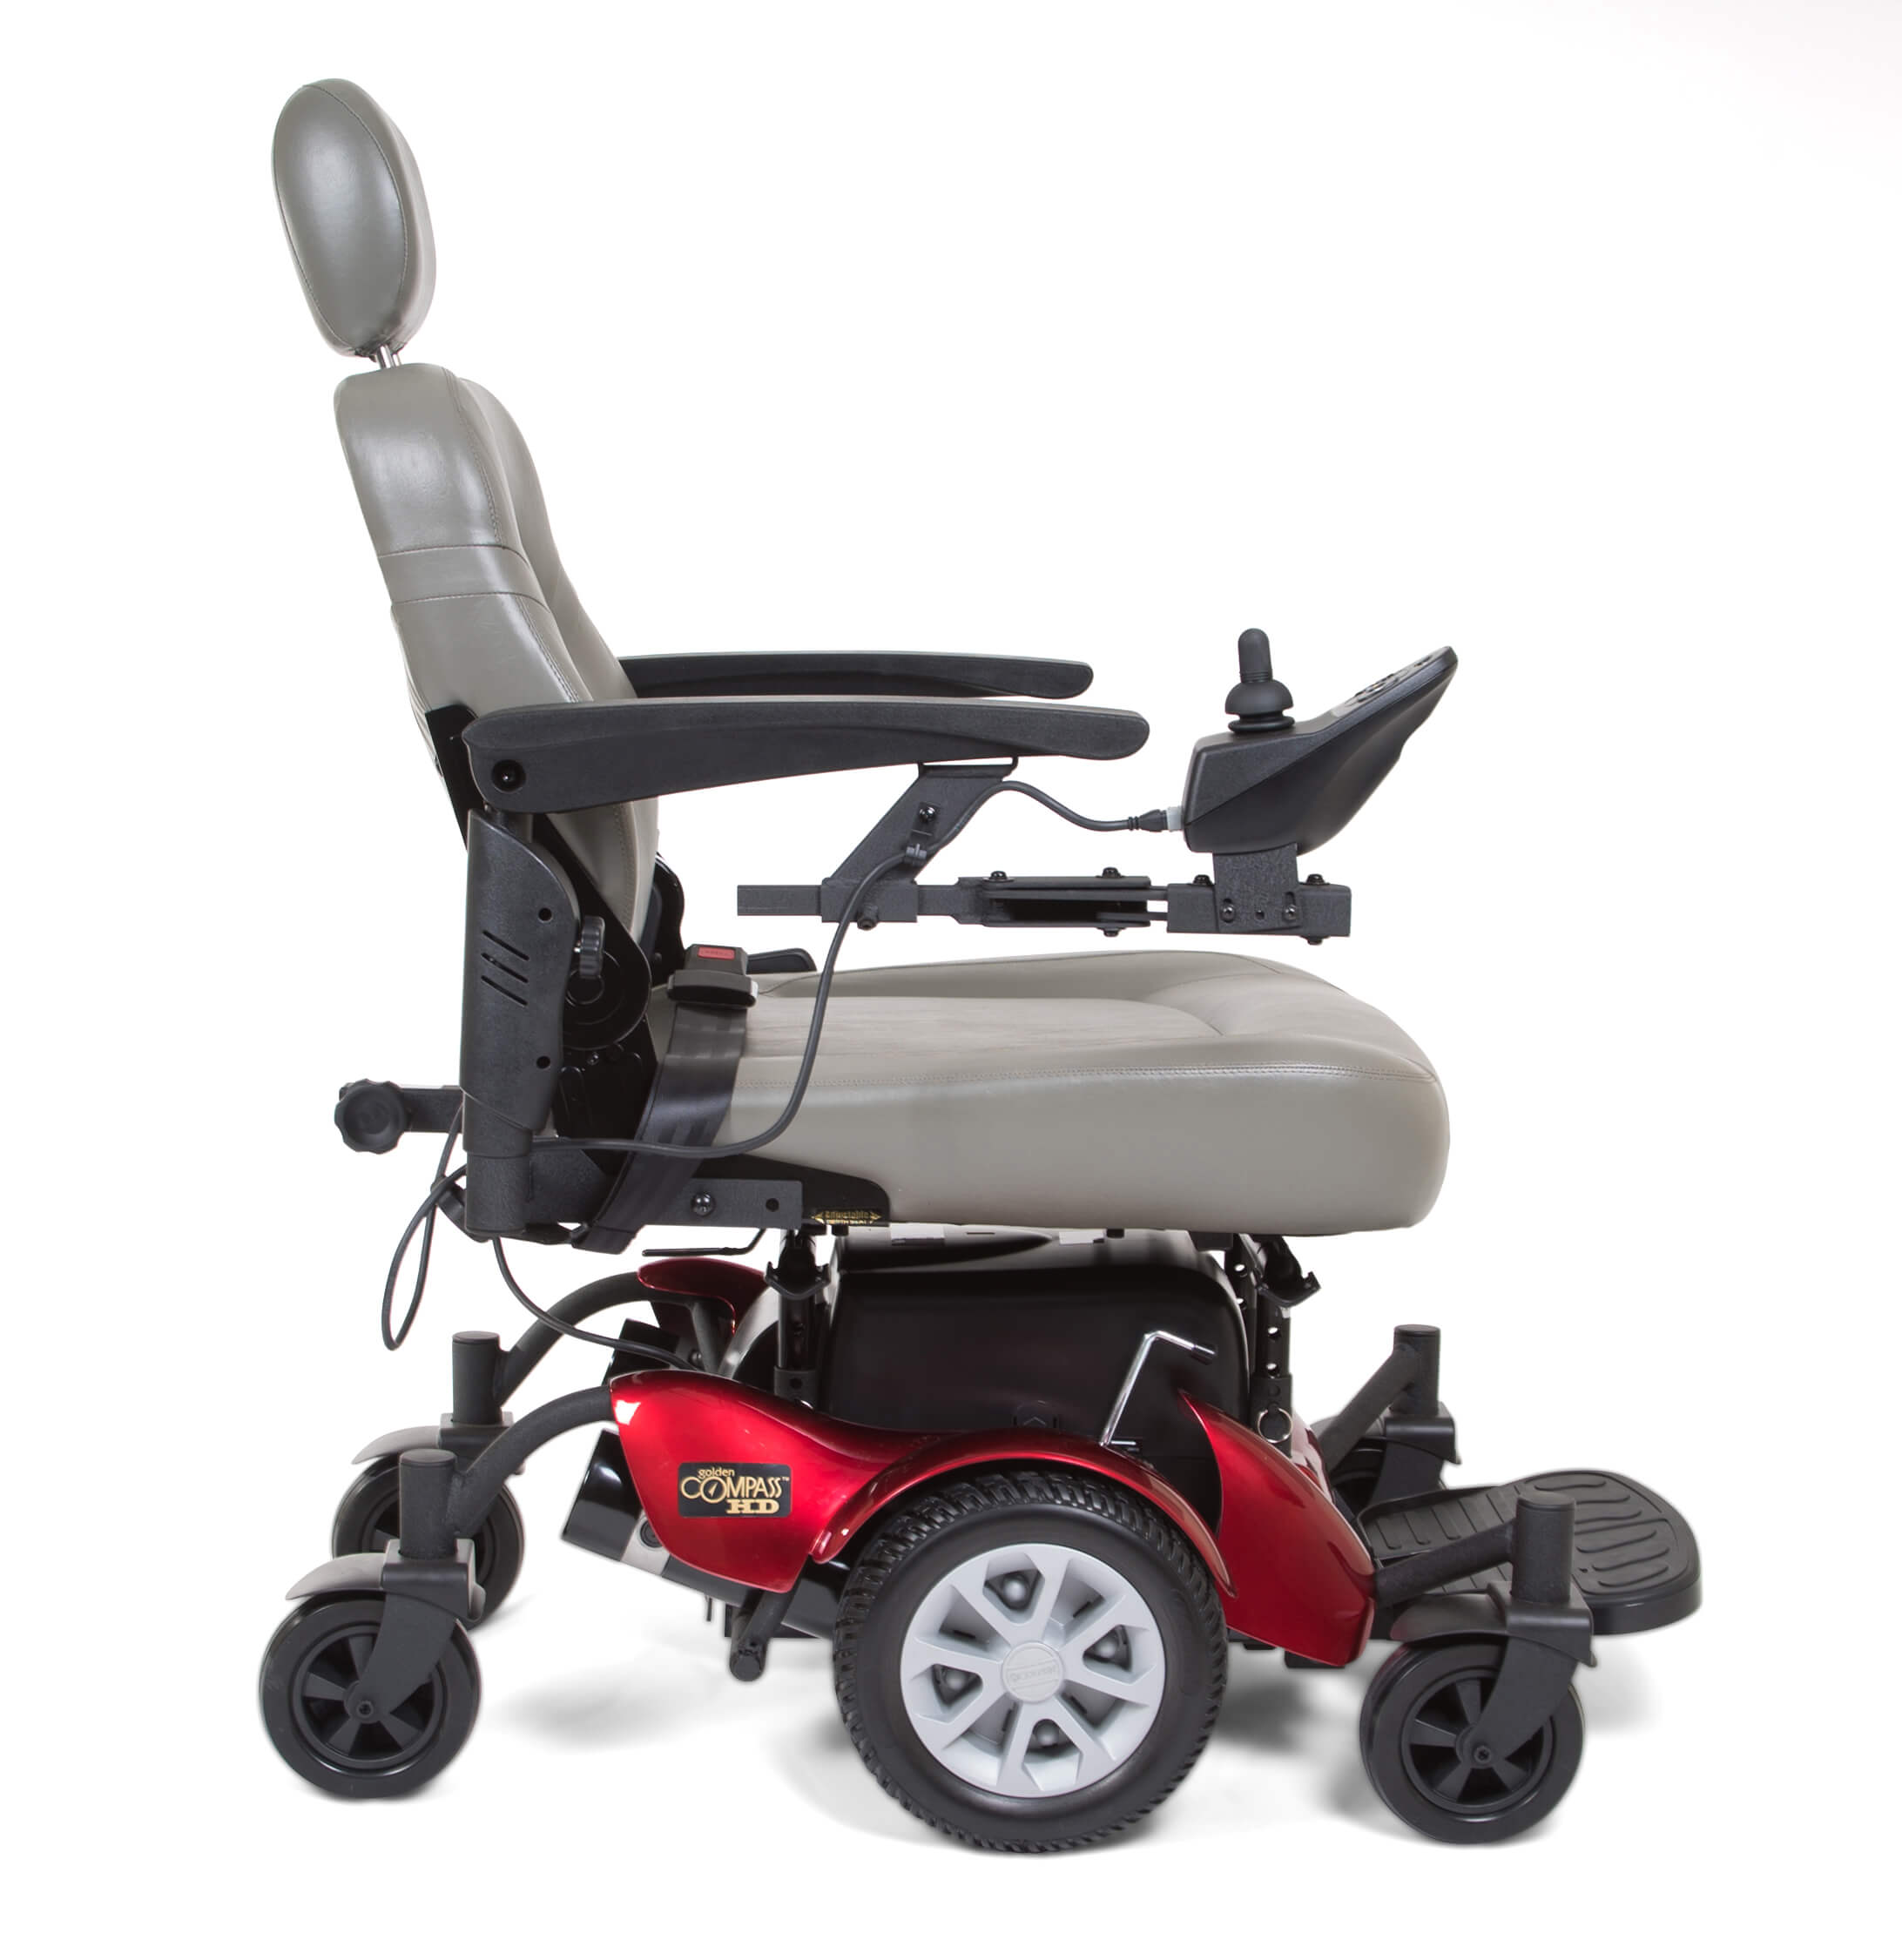 golden power chair rail at lowes technologies gp620 compass hd heavy duty